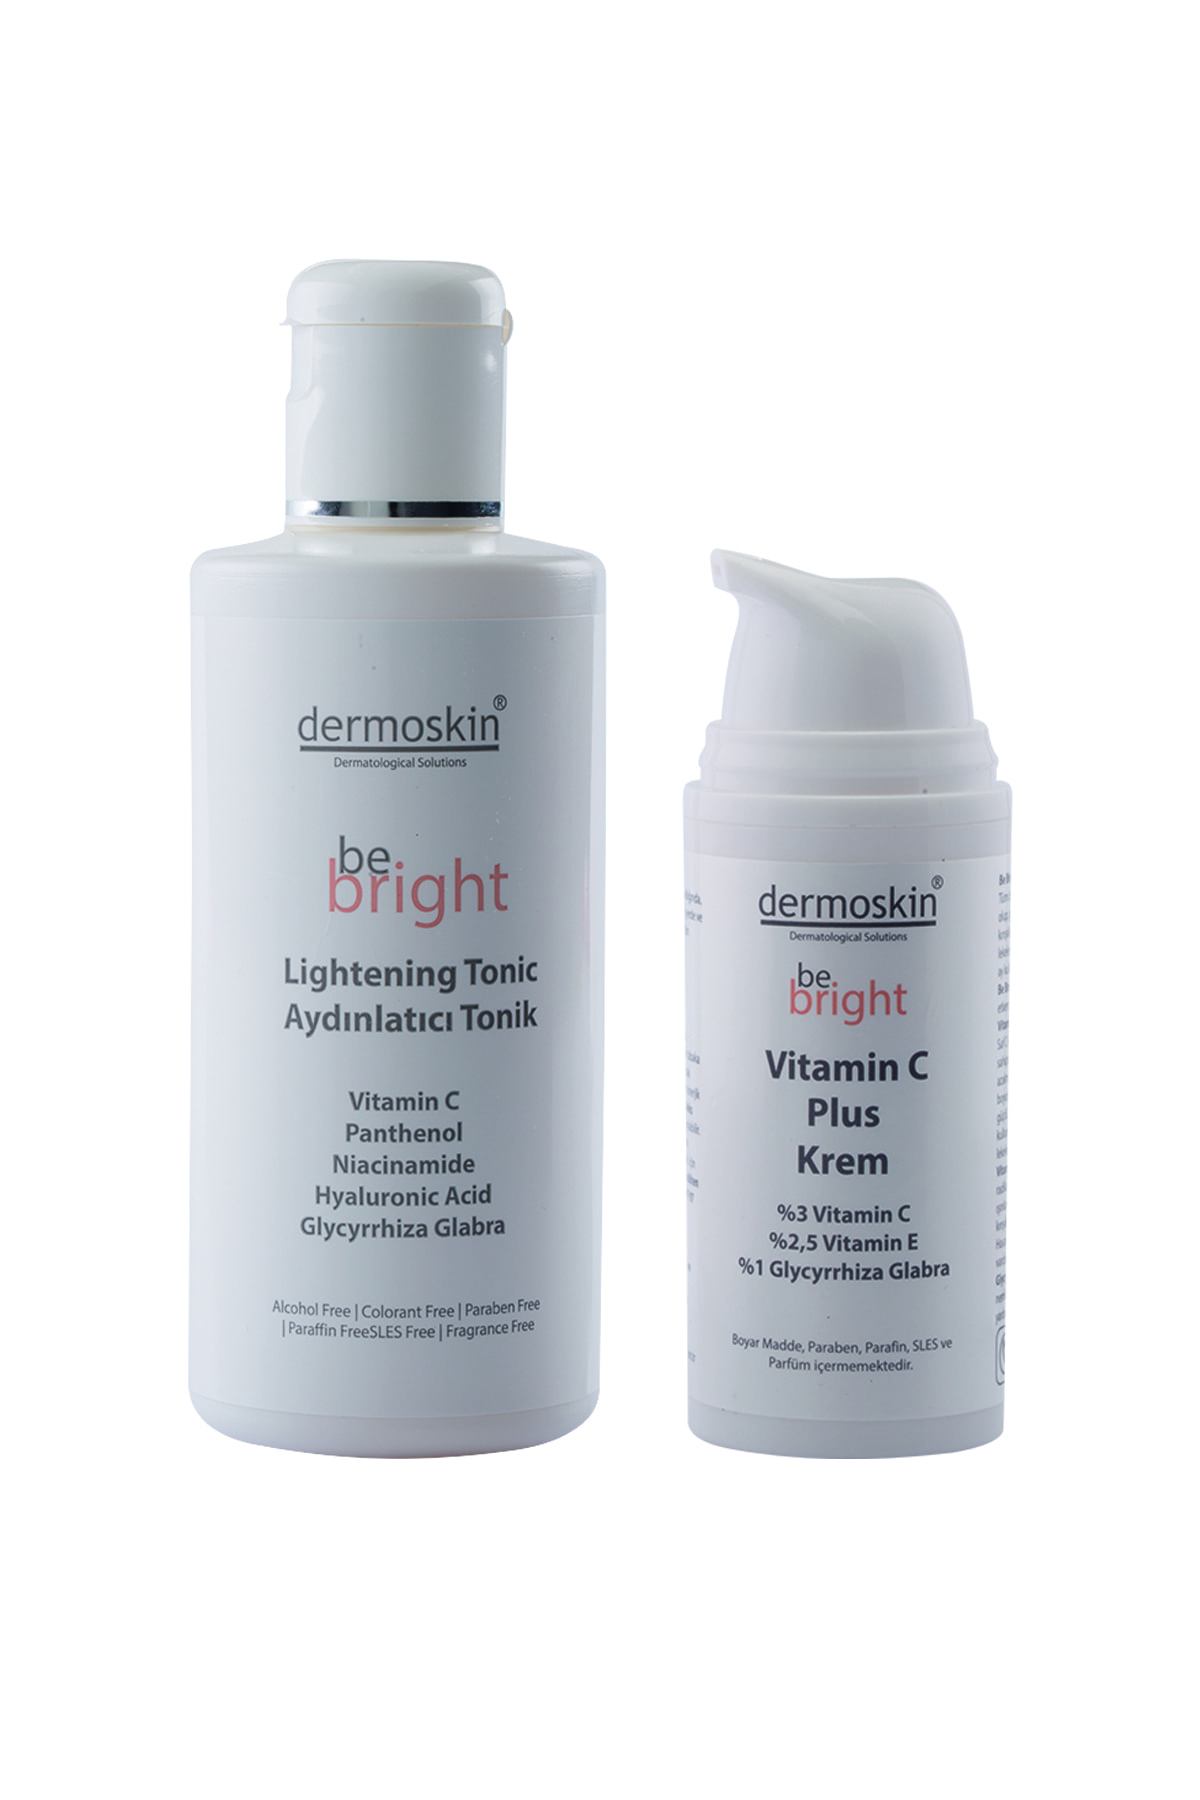 Dermoskin Be Bright Vitamin C Plus Krem 33ml + Be Bright Aydınlatıcı Tonik 200ml 1